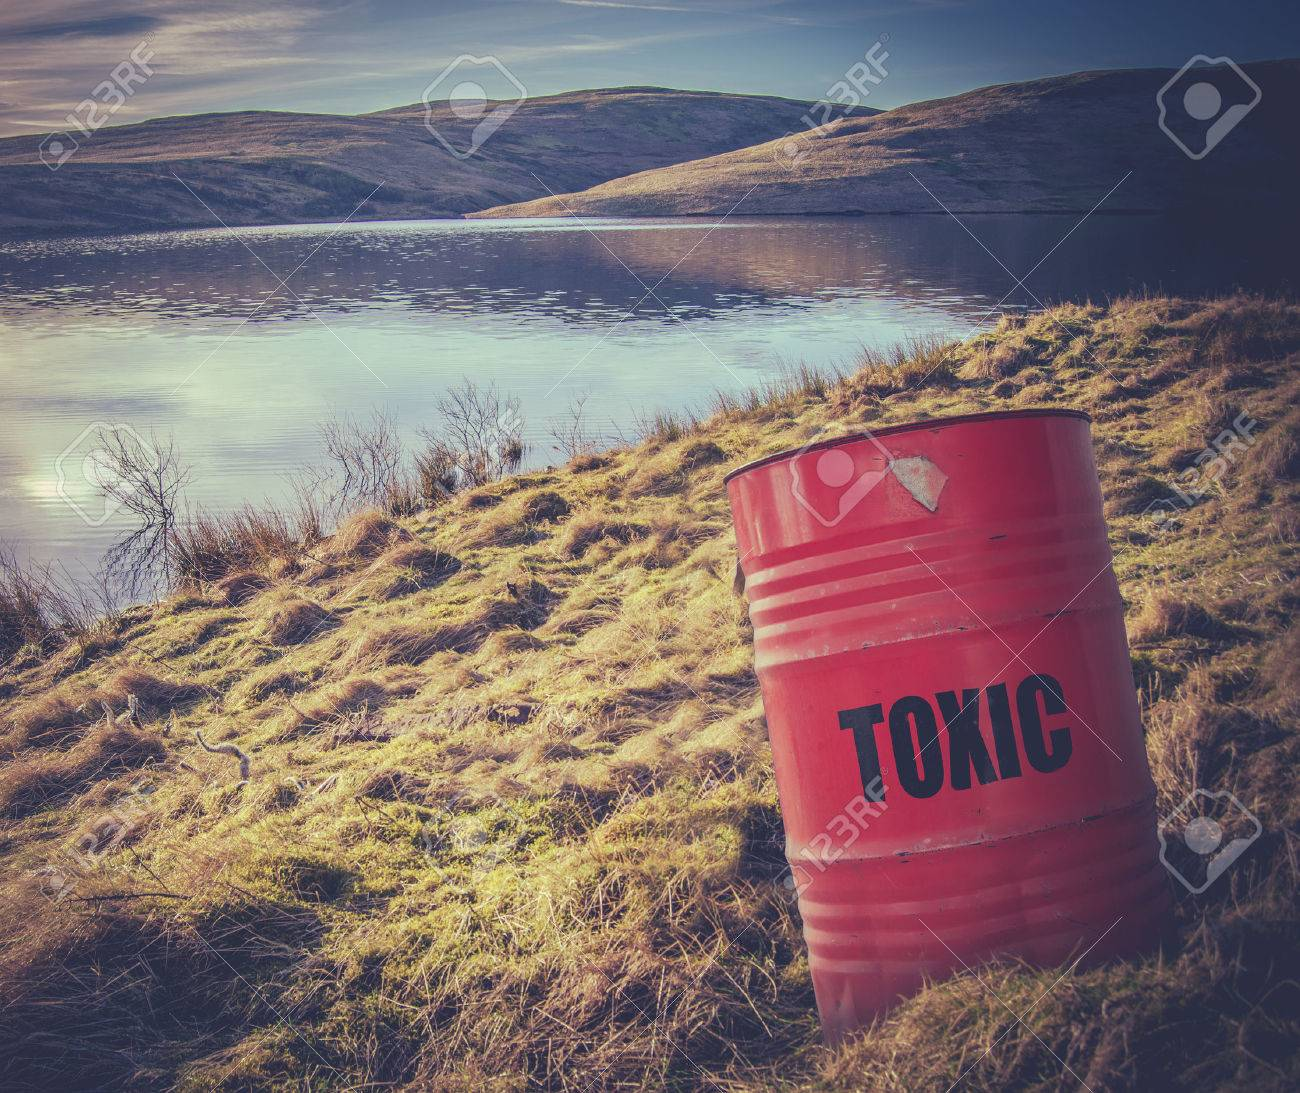 Conceptual Image Of A Toxic Waste Barrel Or Drum Near Water In The Countryside - 32228915